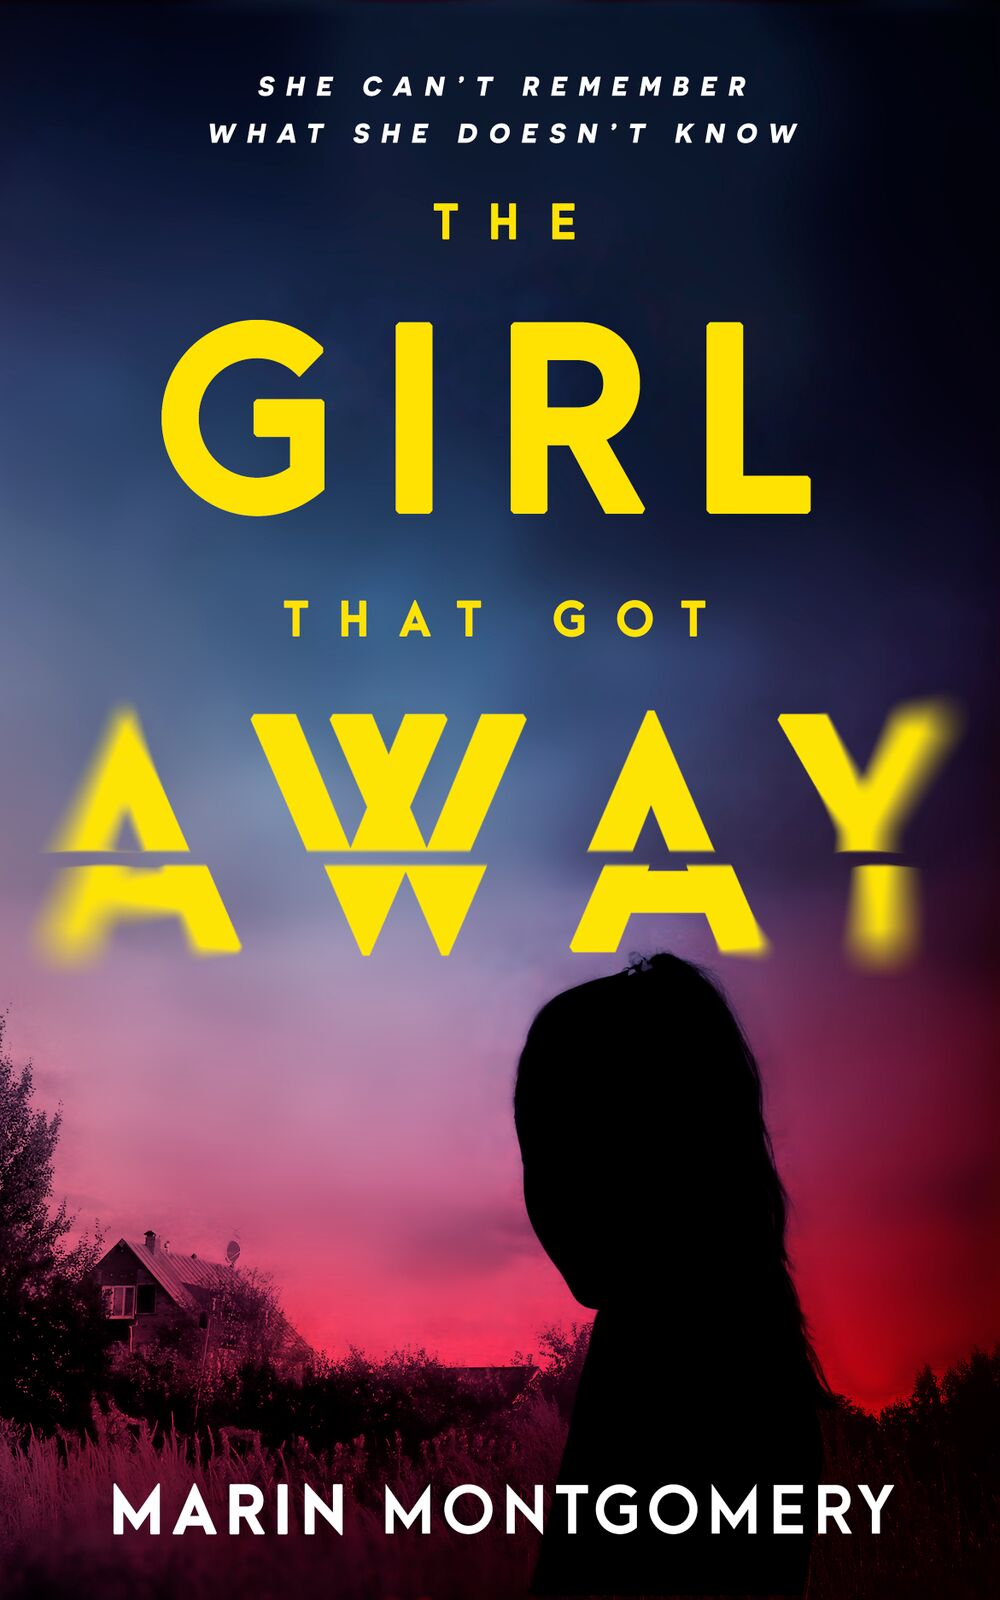 The Girl That Got Away